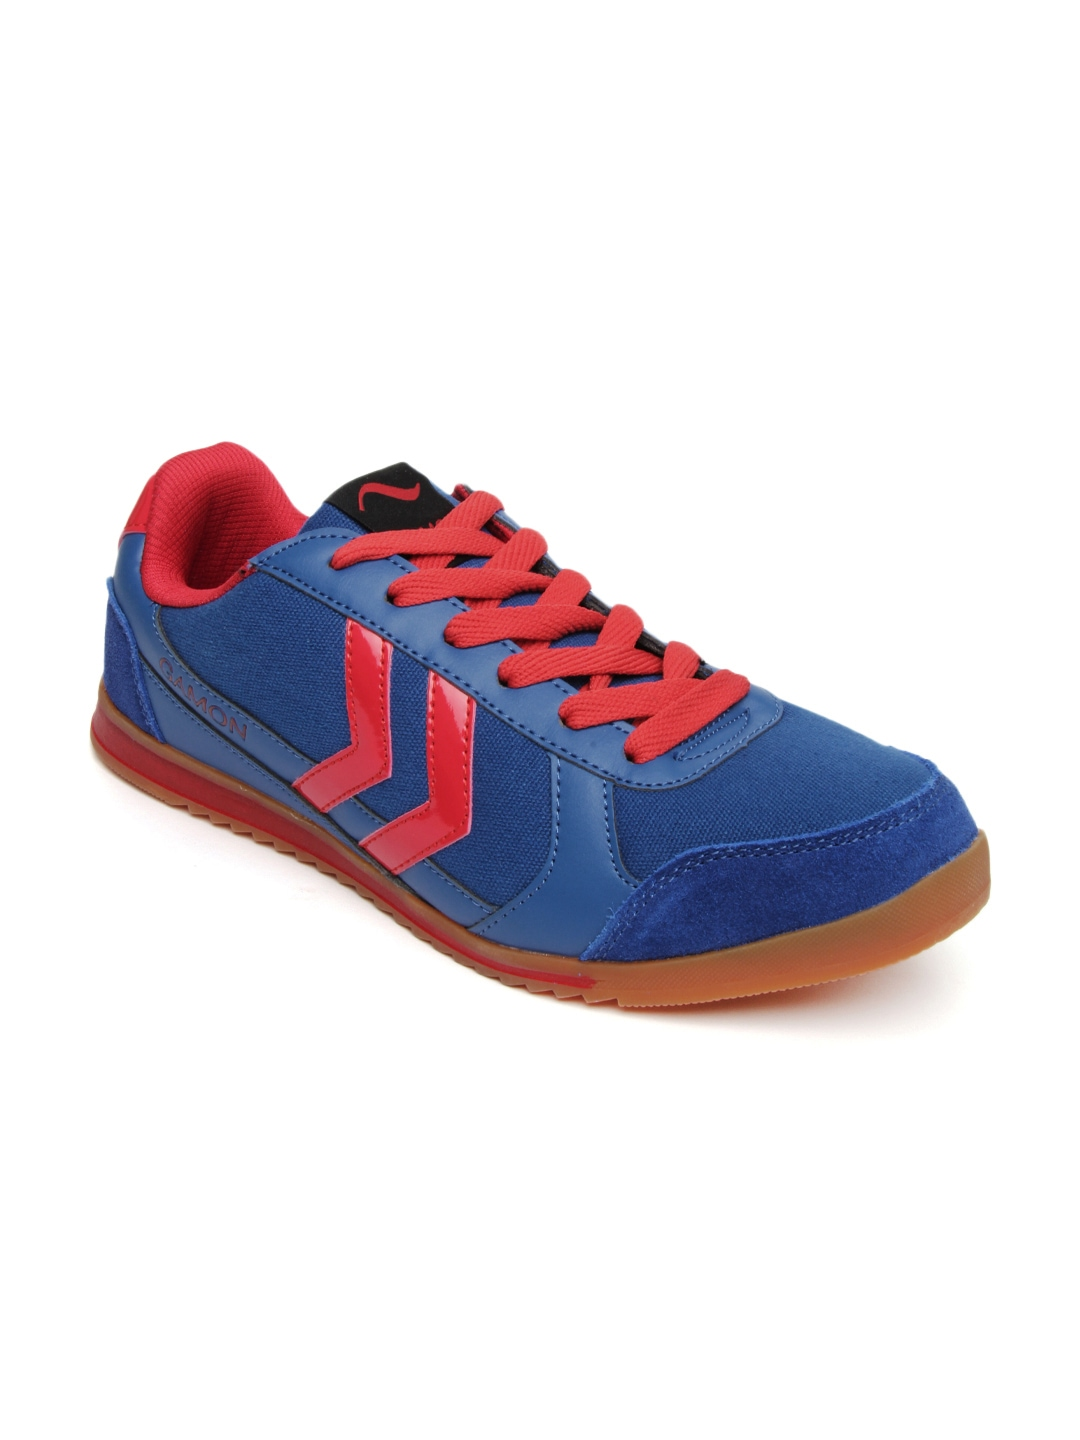 myntra g sports blue aster casual shoes 238884 buy